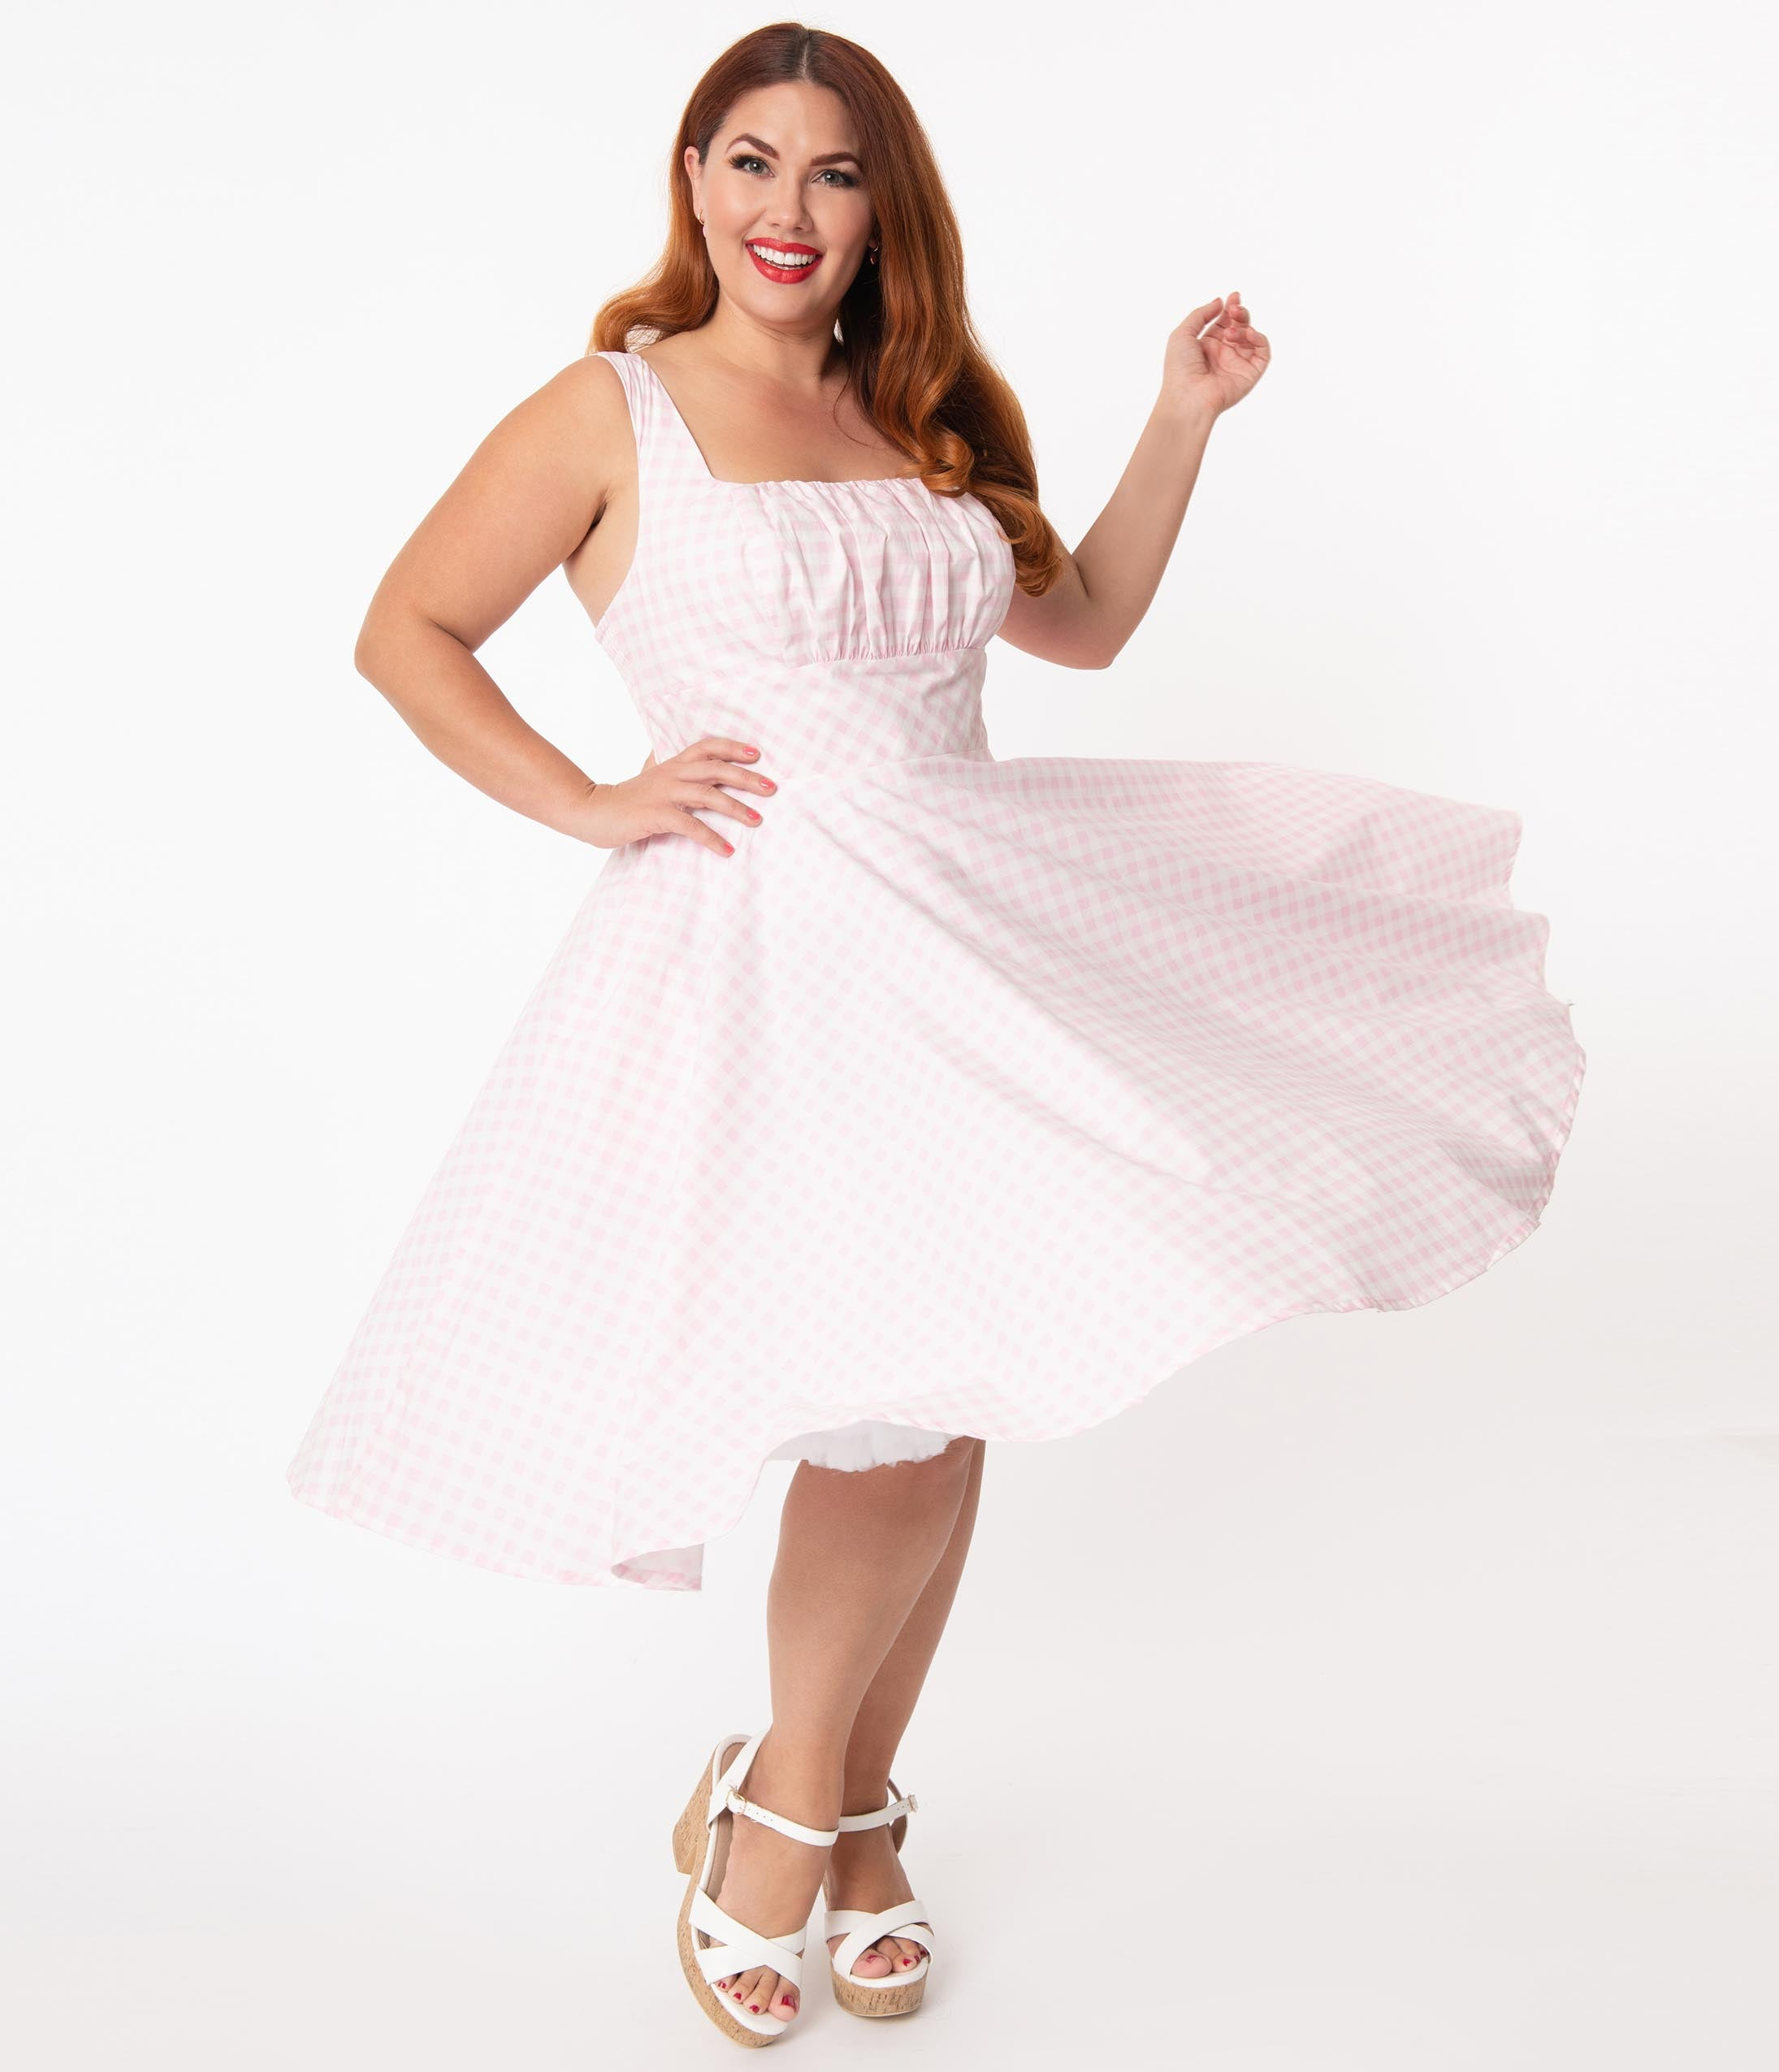 1950s Plus Size Fashion & Clothing History Plus Size Light Pink  White Gingham Amelia Swing Dress $78.00 AT vintagedancer.com